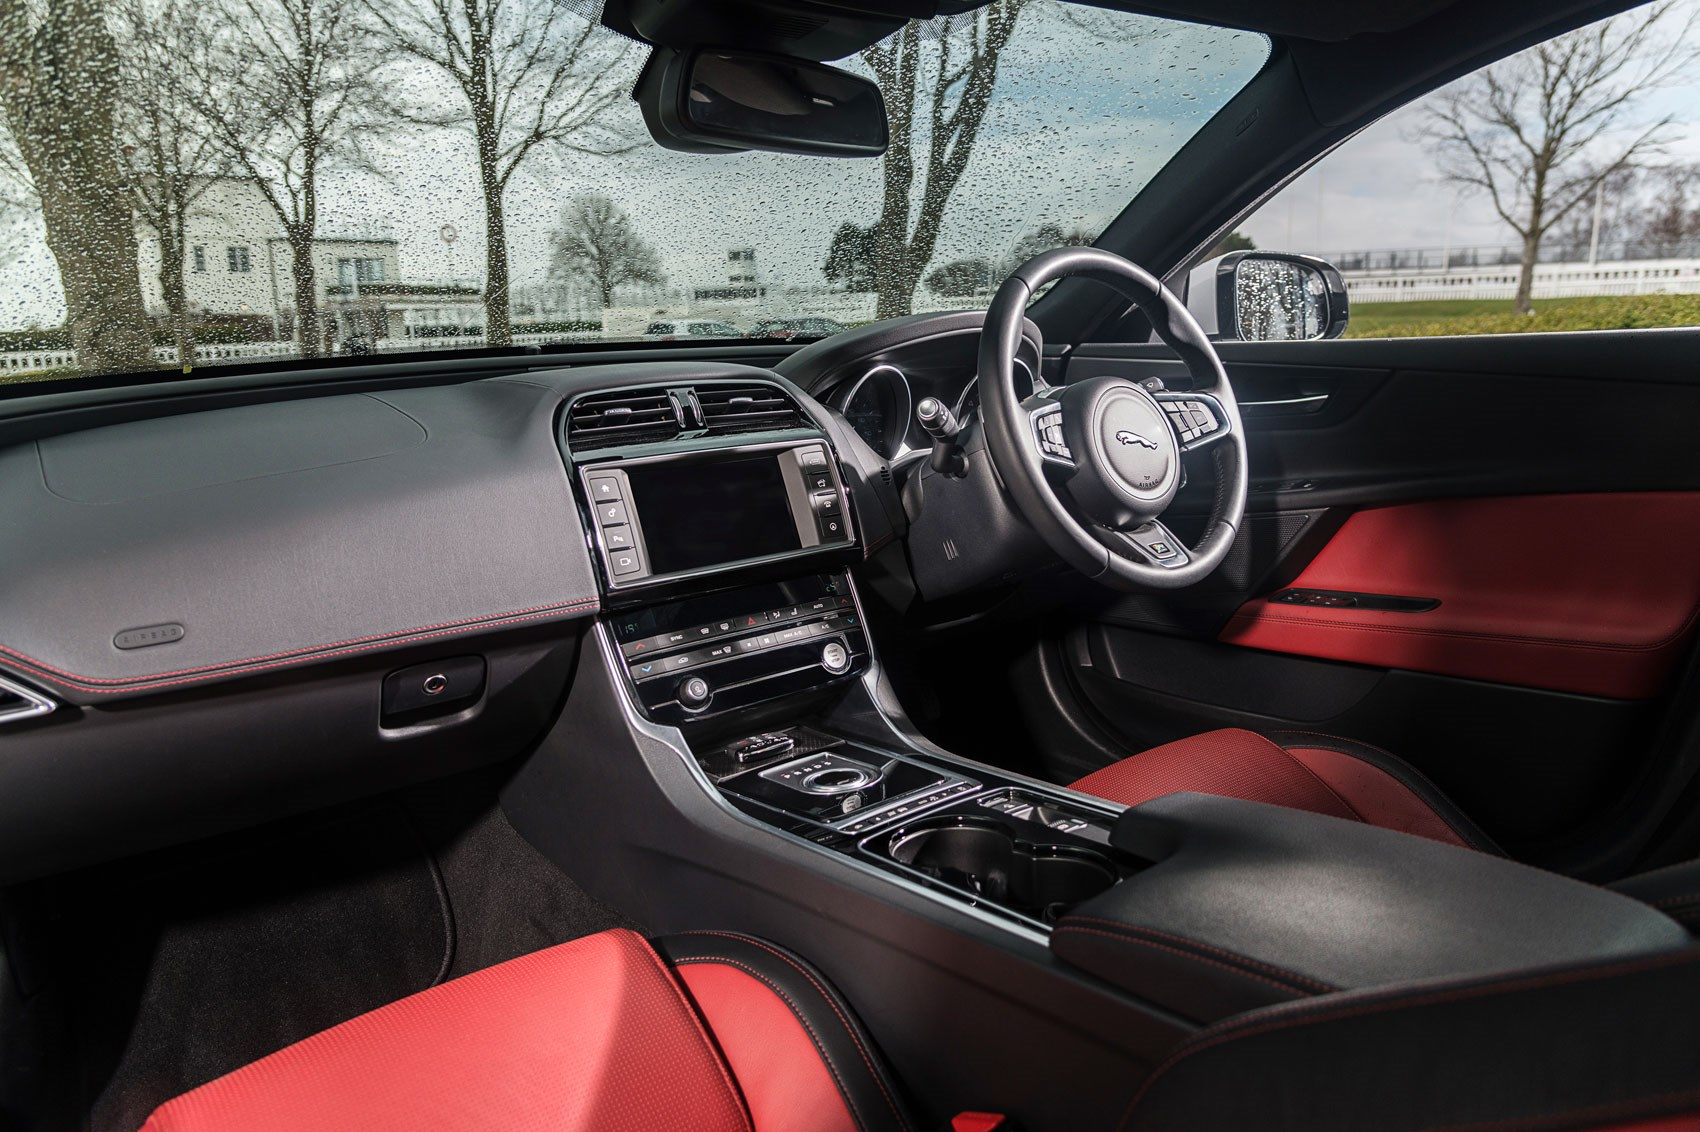 2017 jaguar xe manual transmission